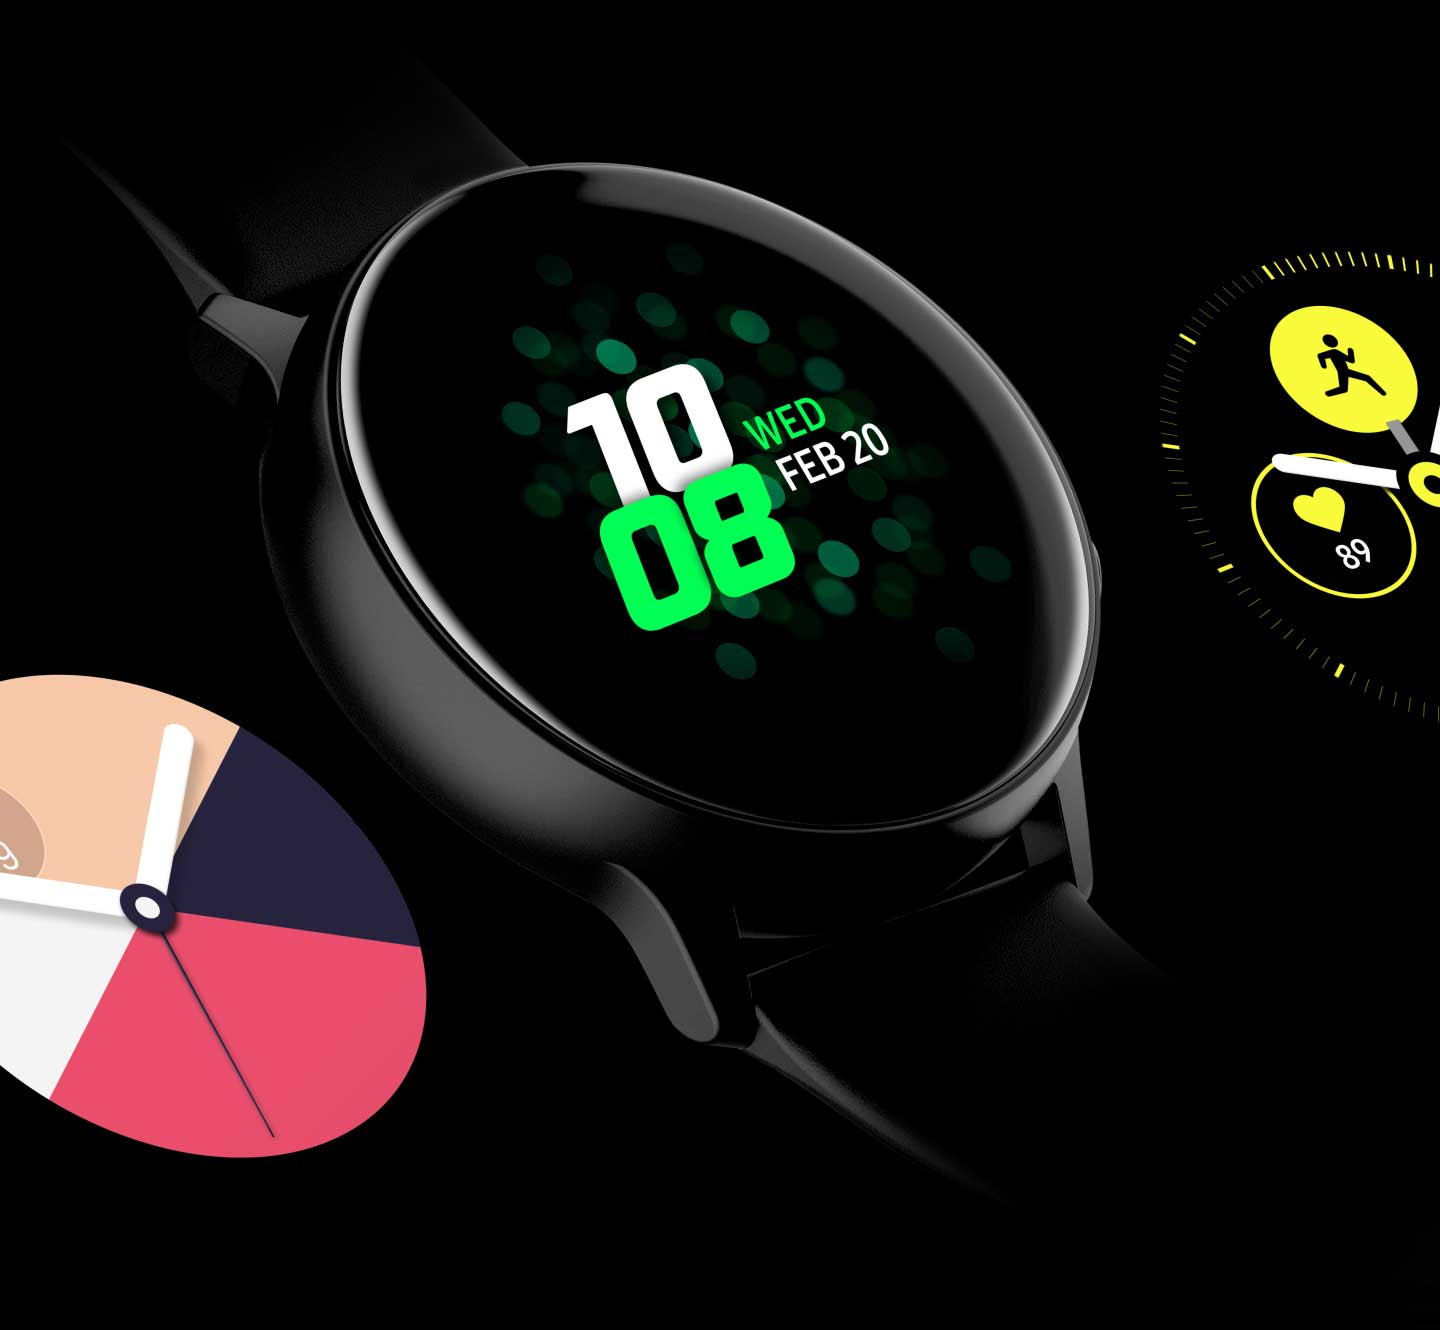 Four different designs of watch faces are exposed on the screen in The Galaxy Watch Active one by one. - face2